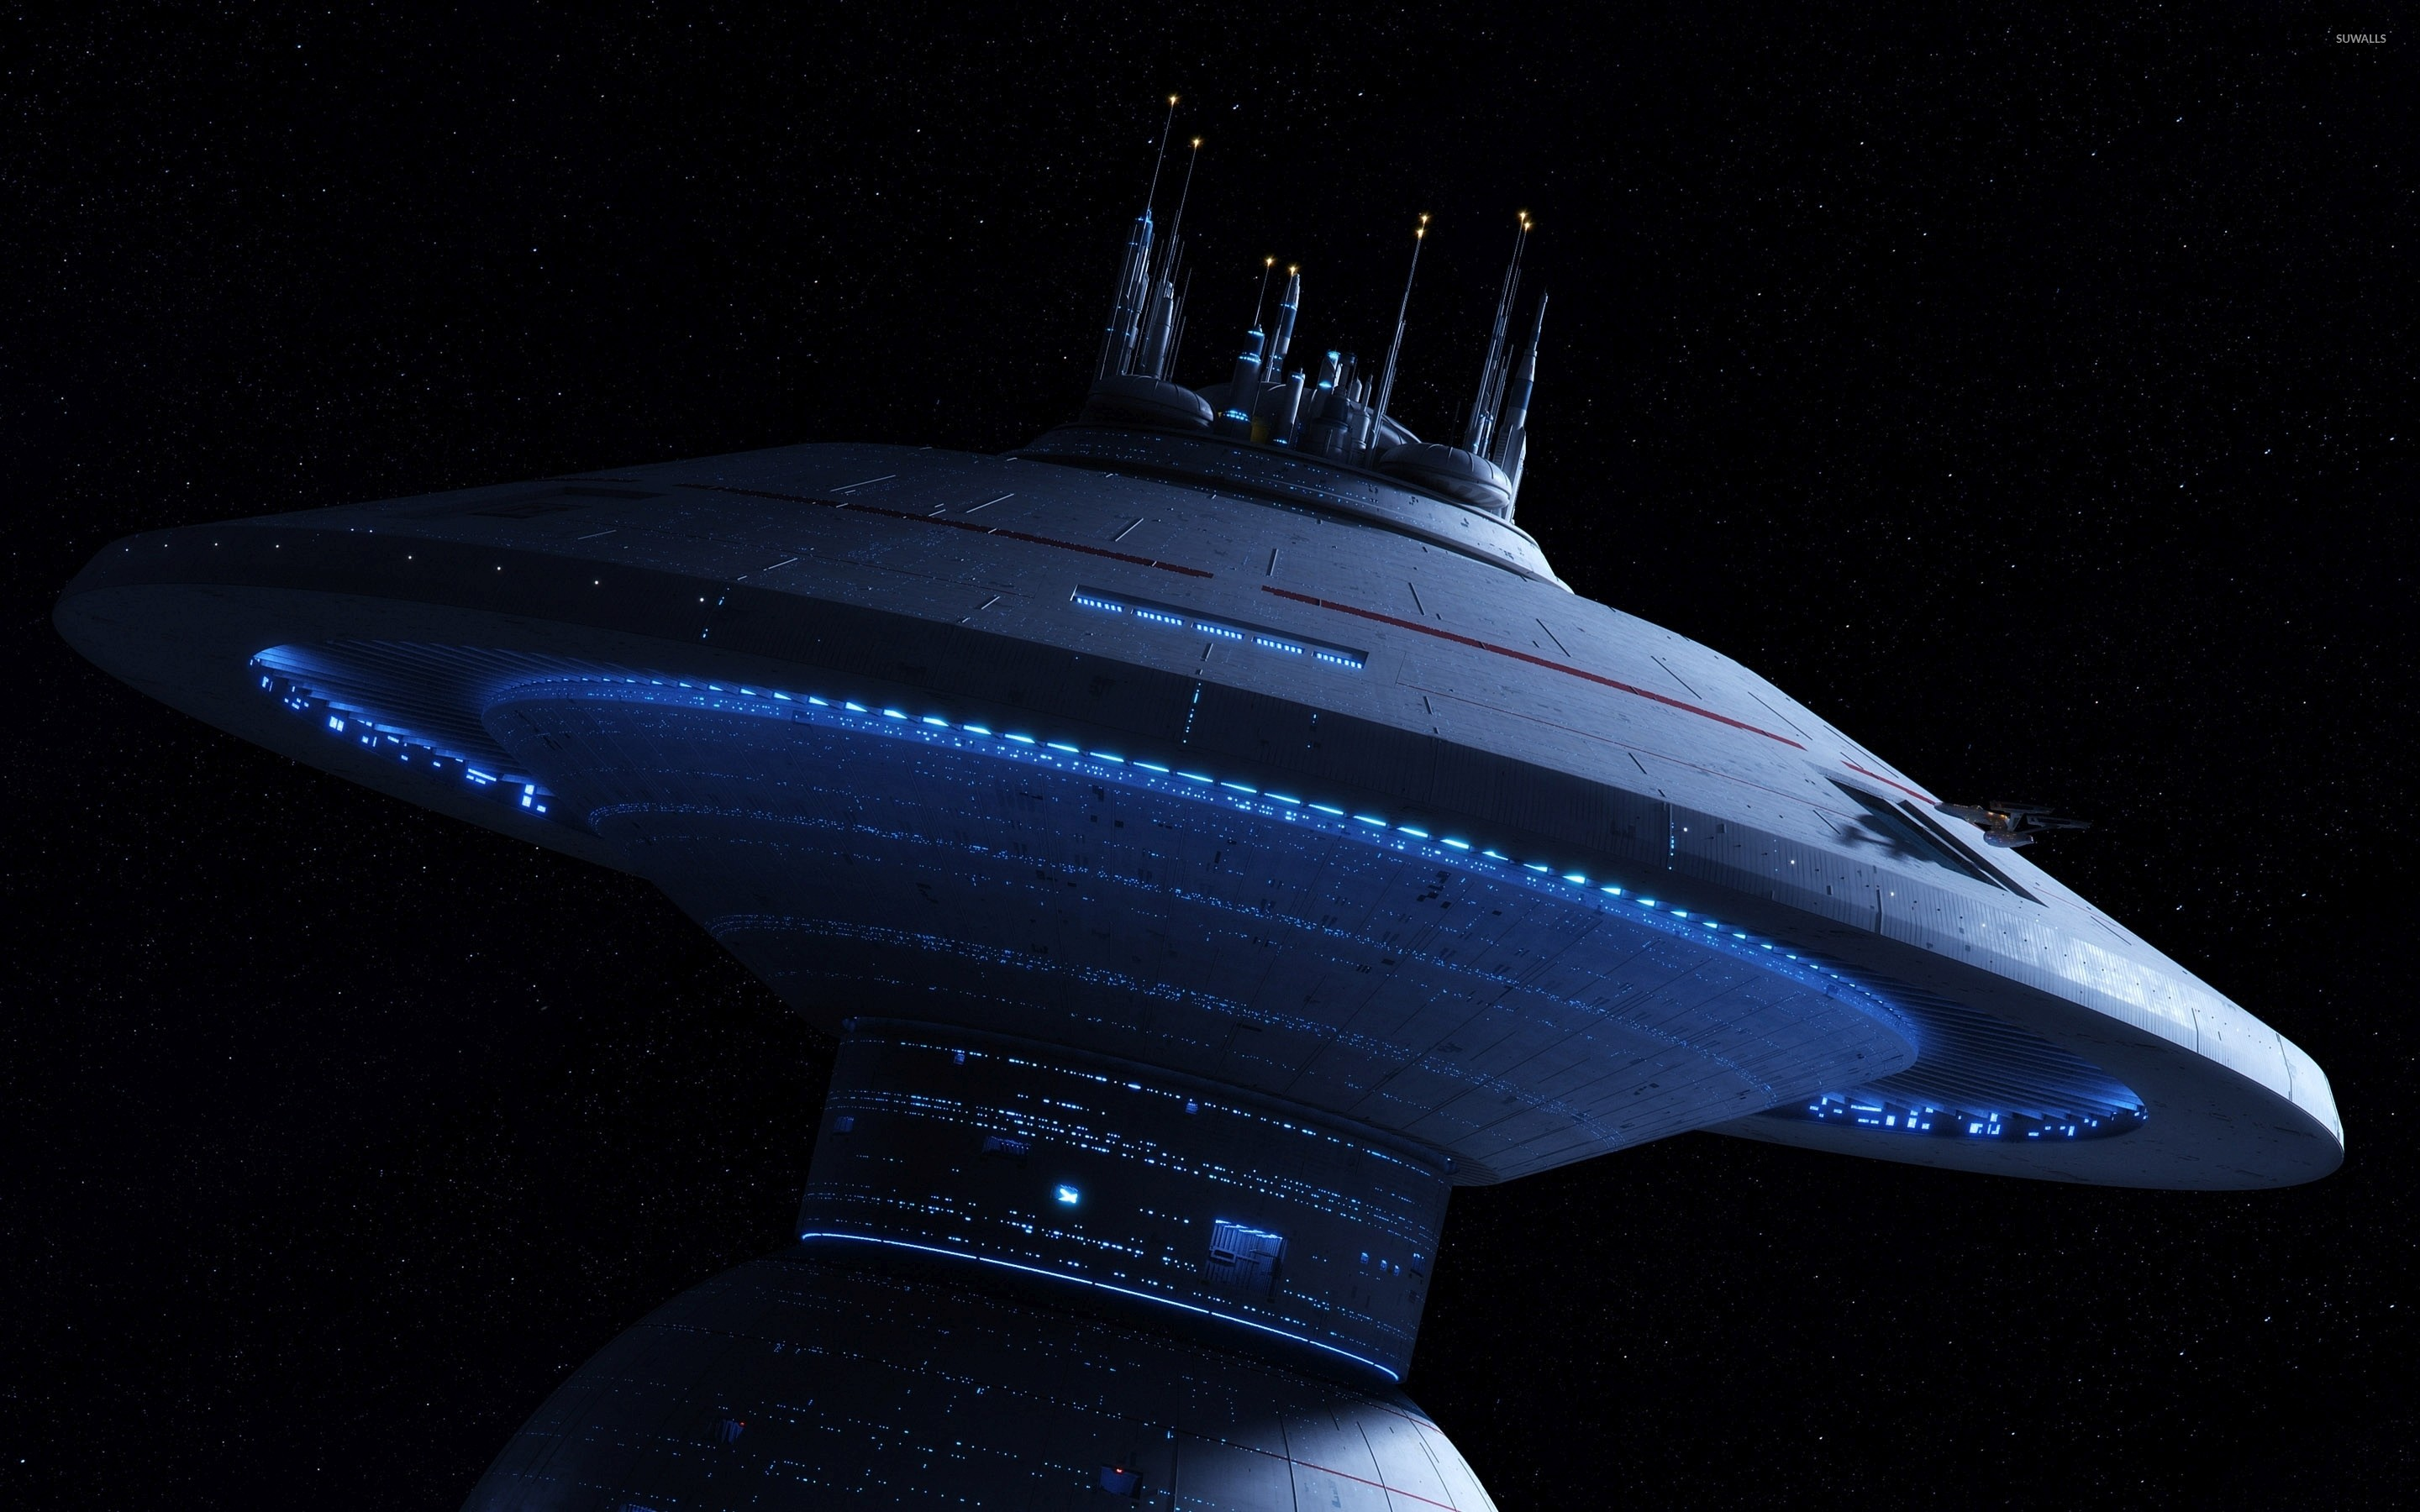 2880x1800 Spacedock - Star Trek wallpaper  jpg